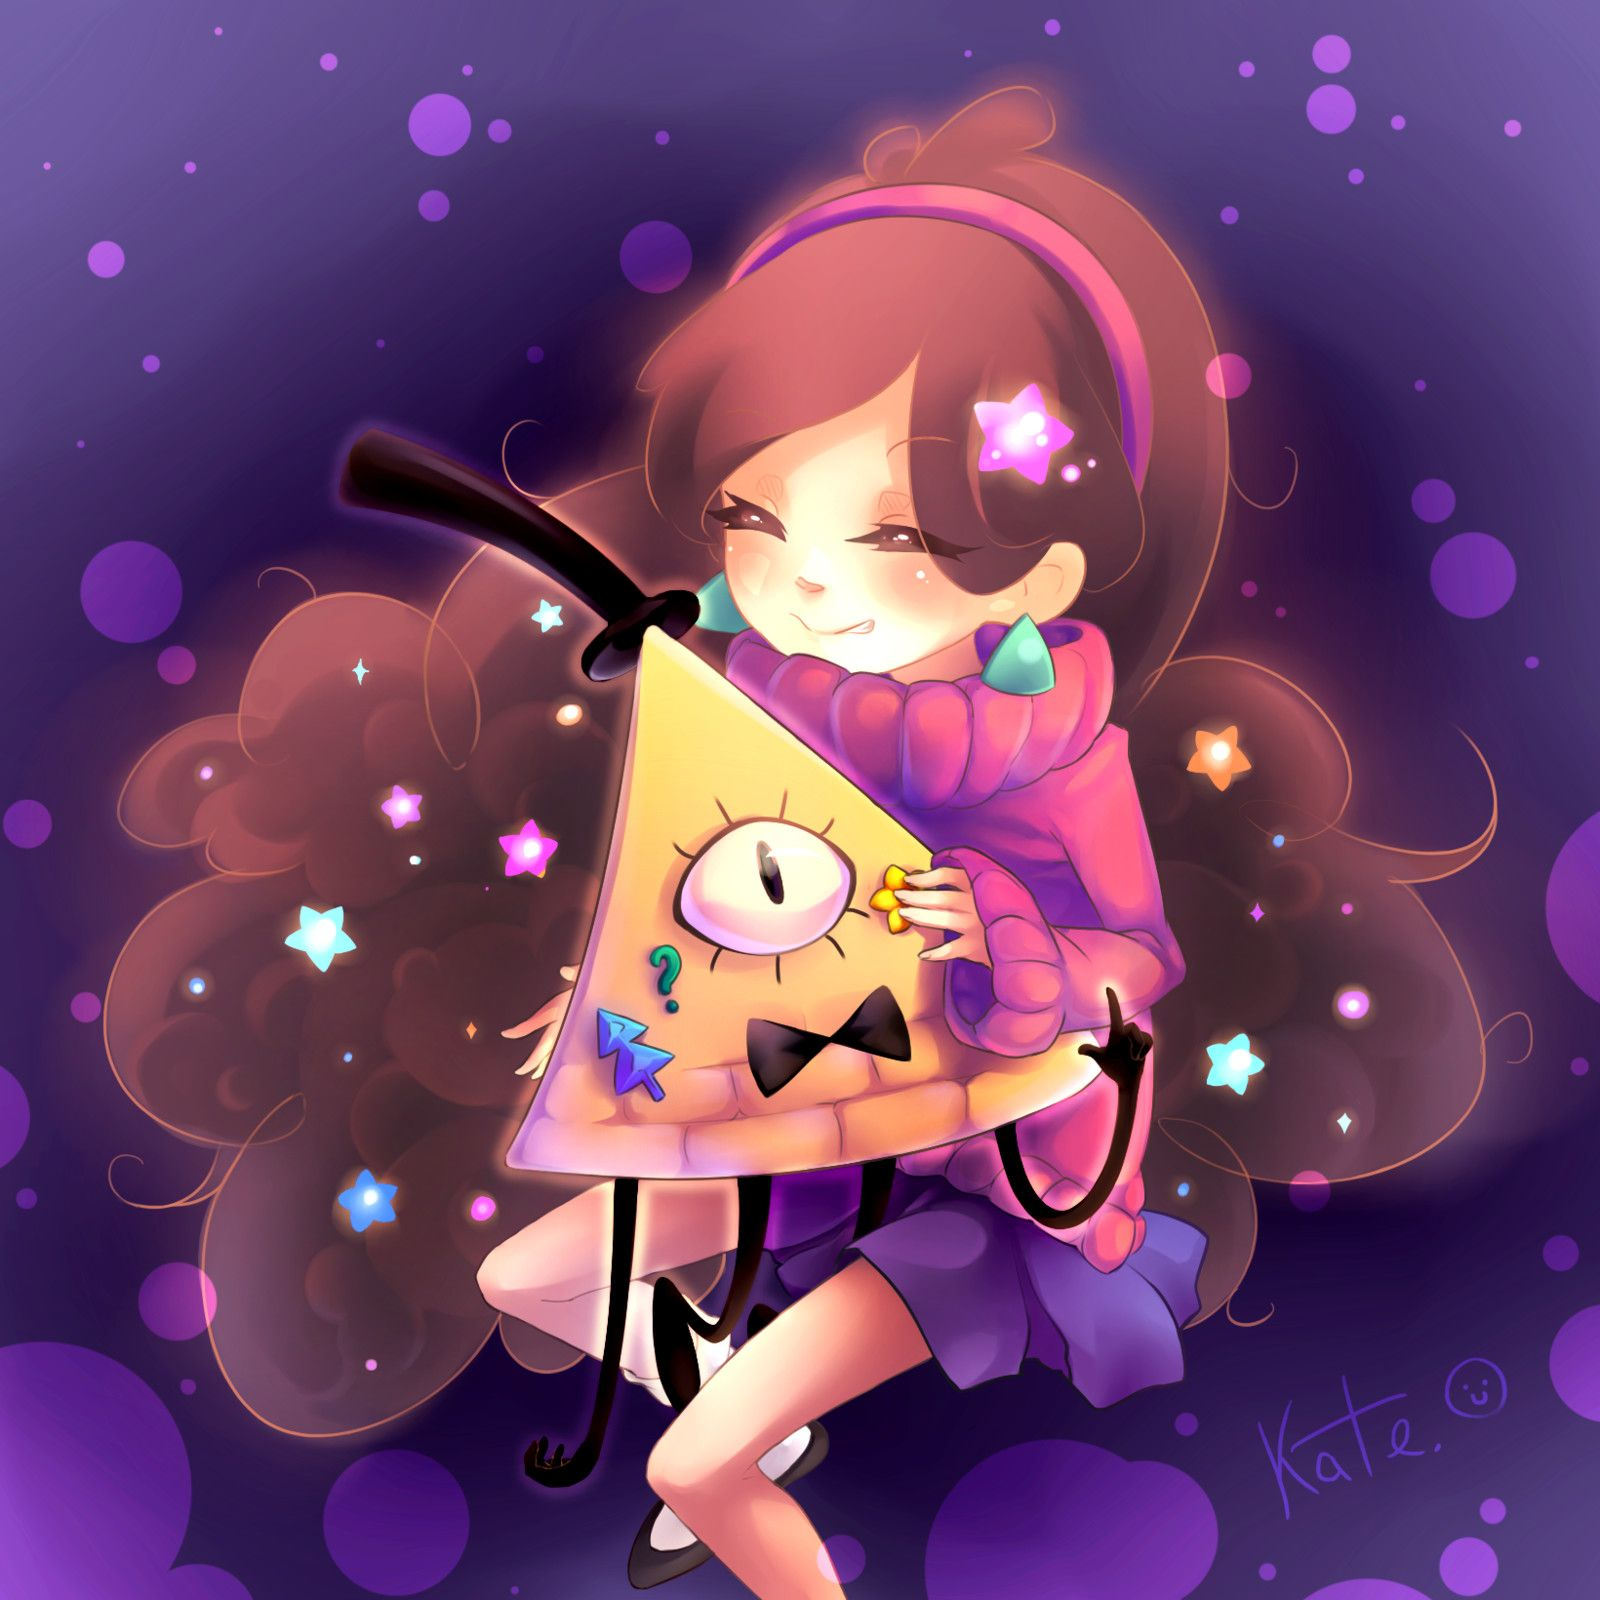 Pin by noor audi on danger mouse Gravity falls, Gravity